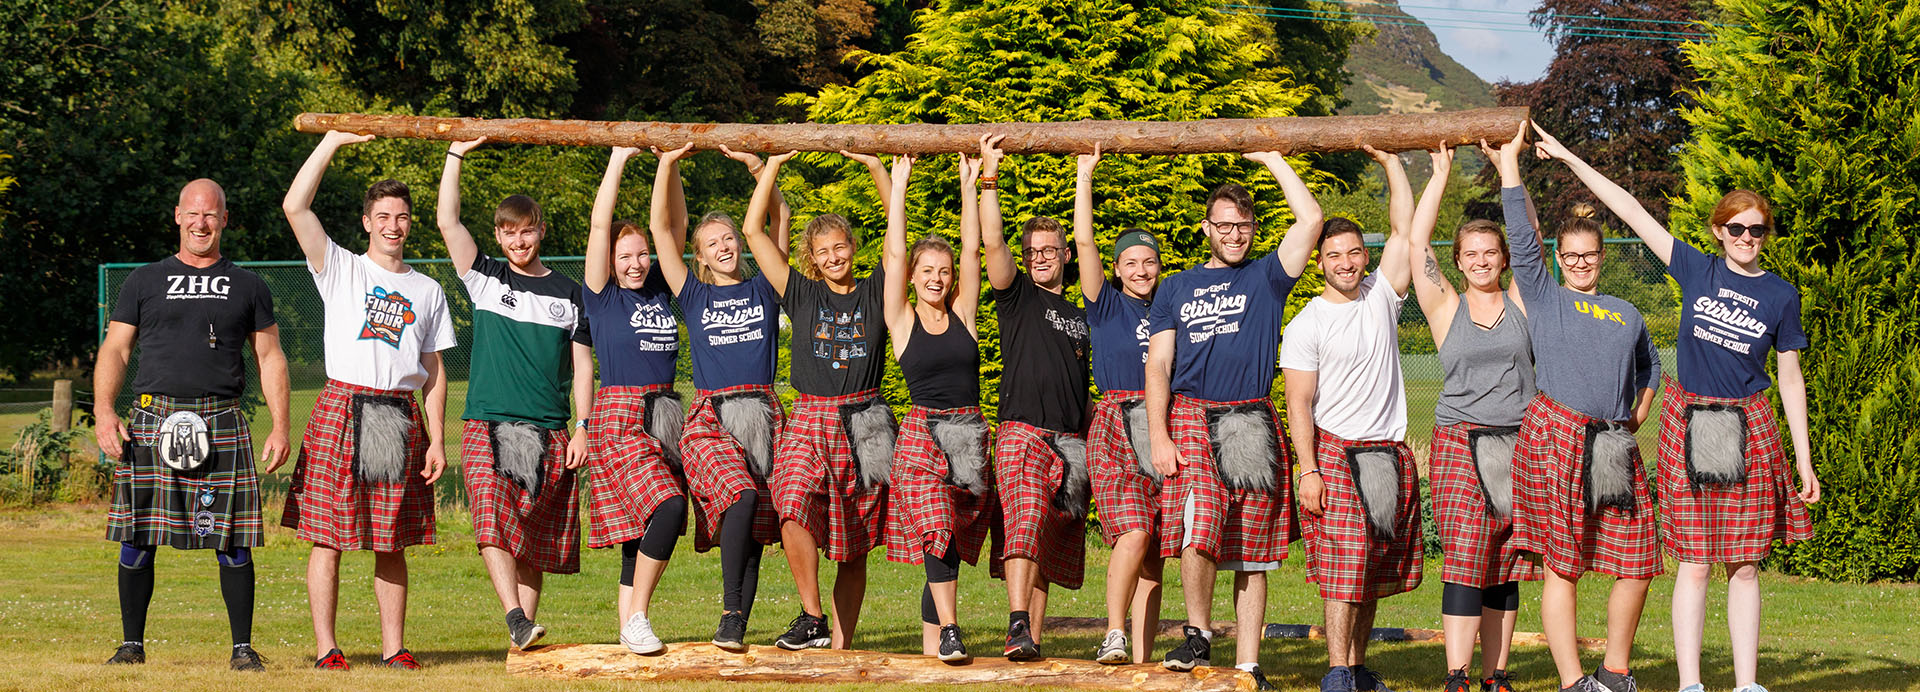 International Summer School students taking part in Highland Games